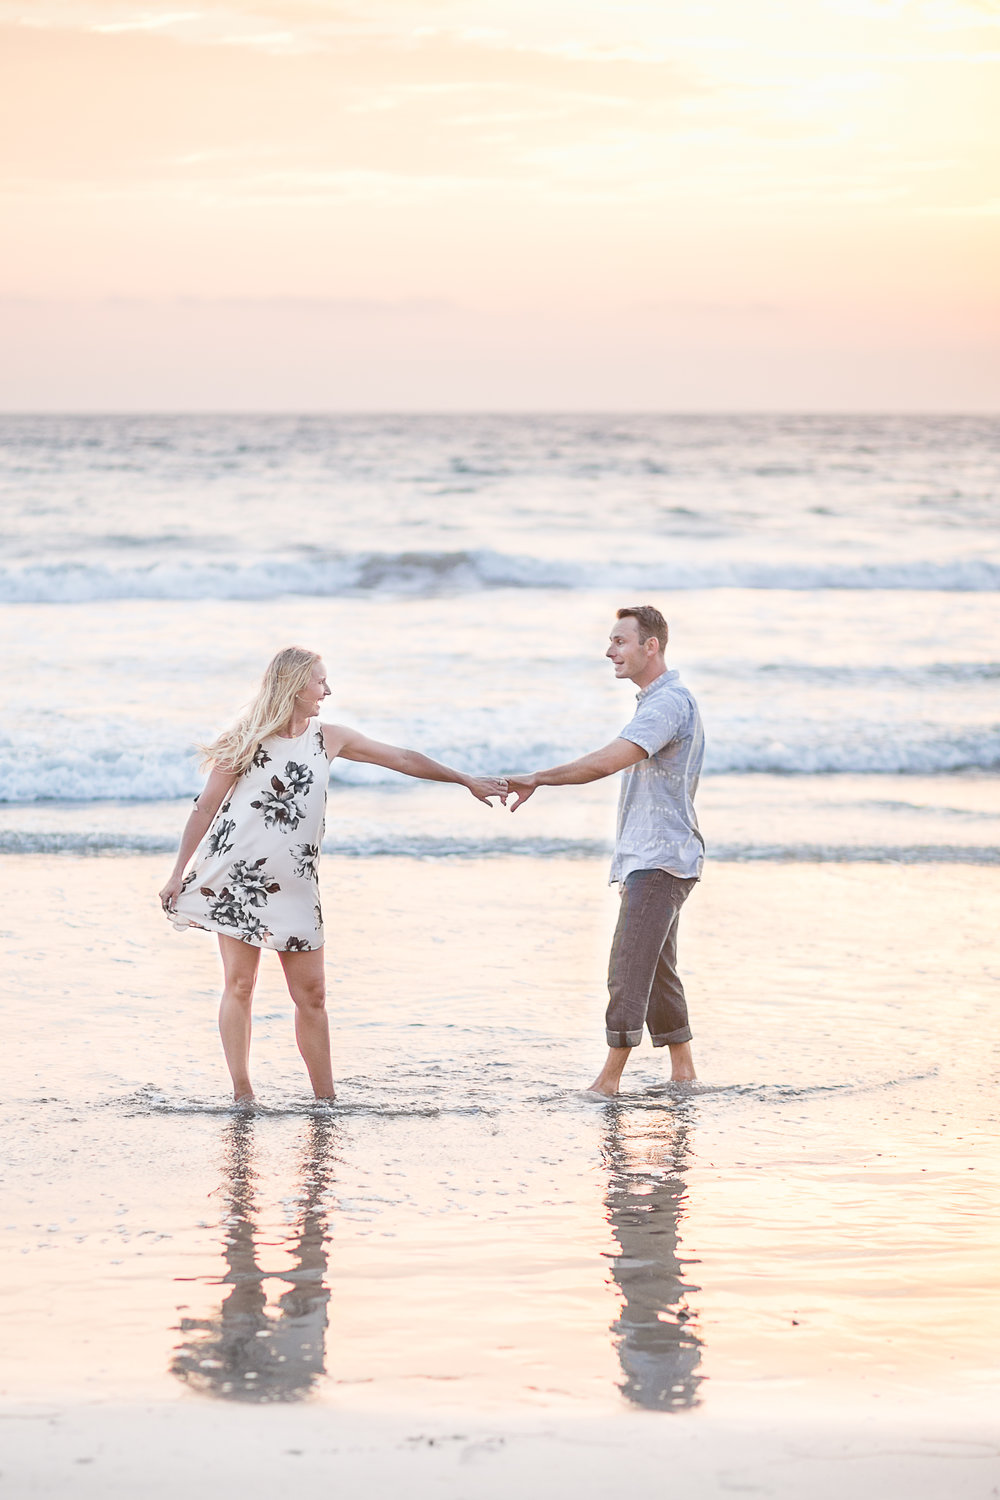 Heather_Smith_&_Chad_Patteson_San_Elijo_Lagoon_Solana_beach_Engagment_Session_2017-21.jpg